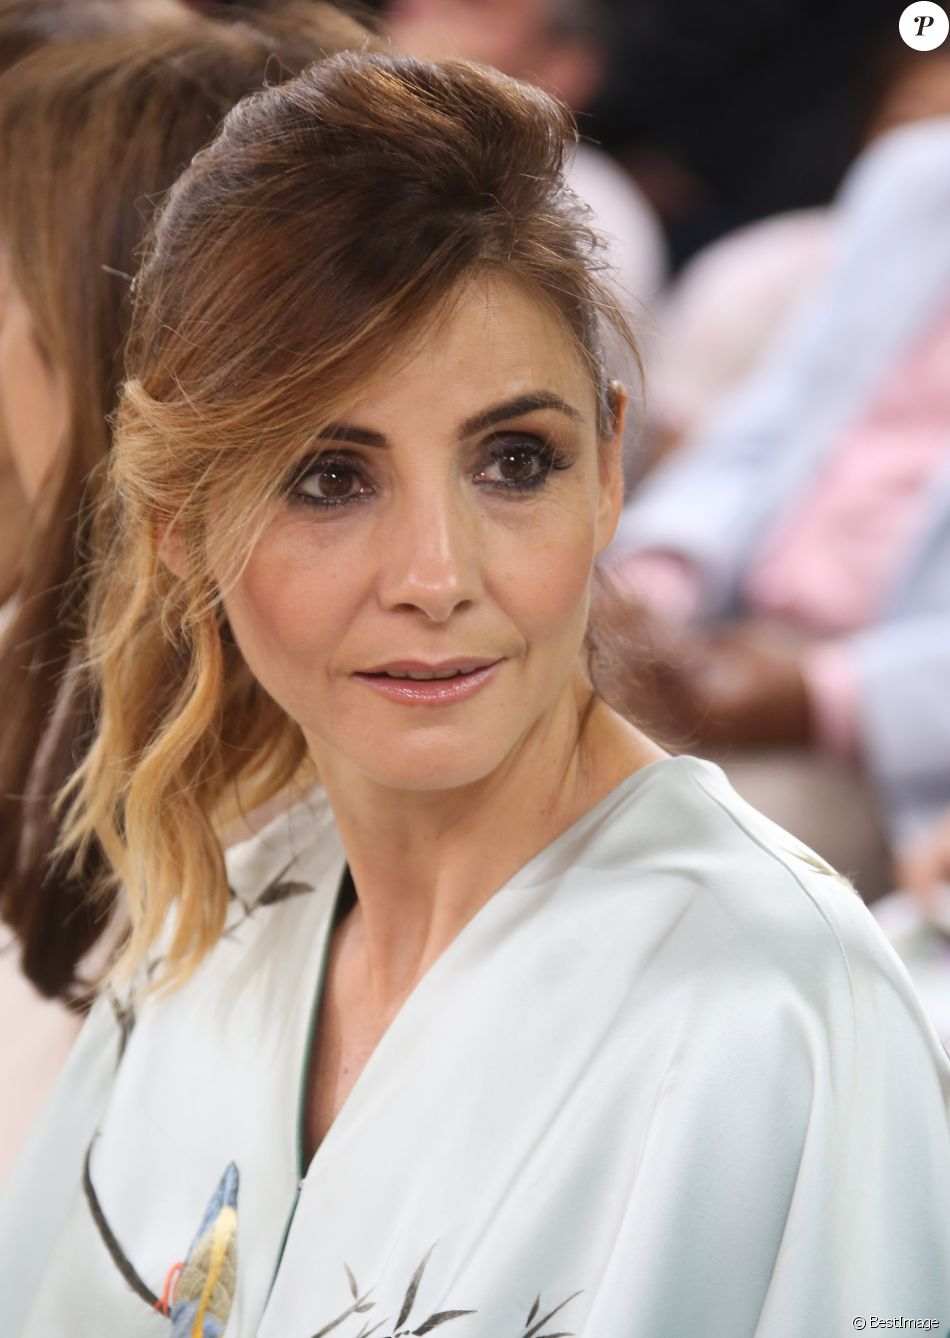 Clotilde Courau nude photos 2019